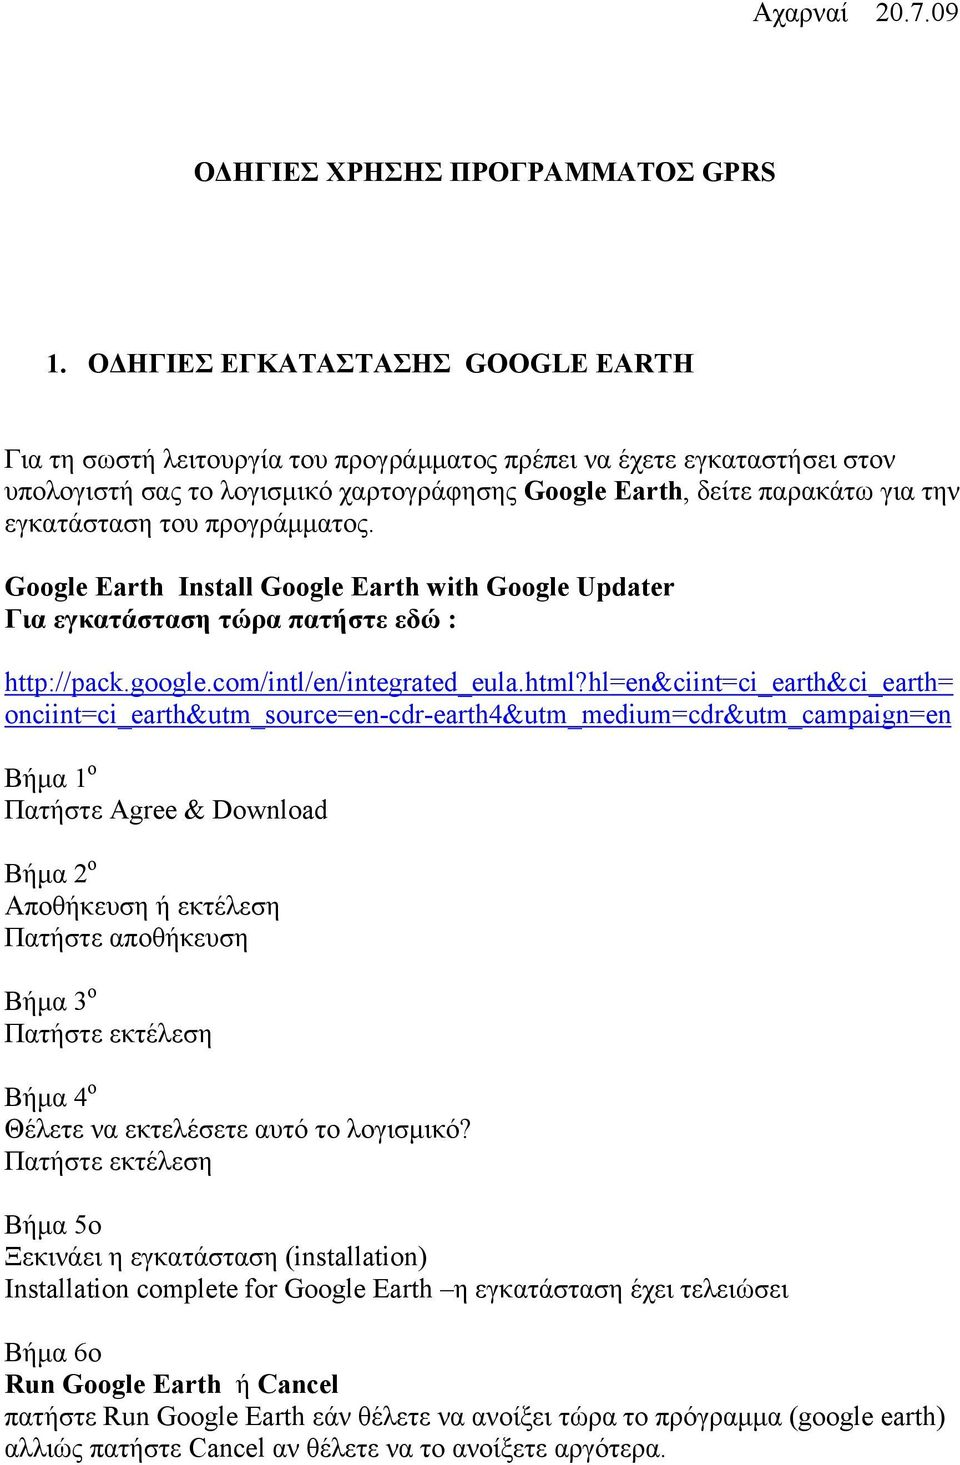 του προγράμματος. Google Earth Install Google Earth with Google Updater Για εγκατάσταση τώρα πατήστε εδώ : http://pack.google.com/intl/en/integrated_eula.html?